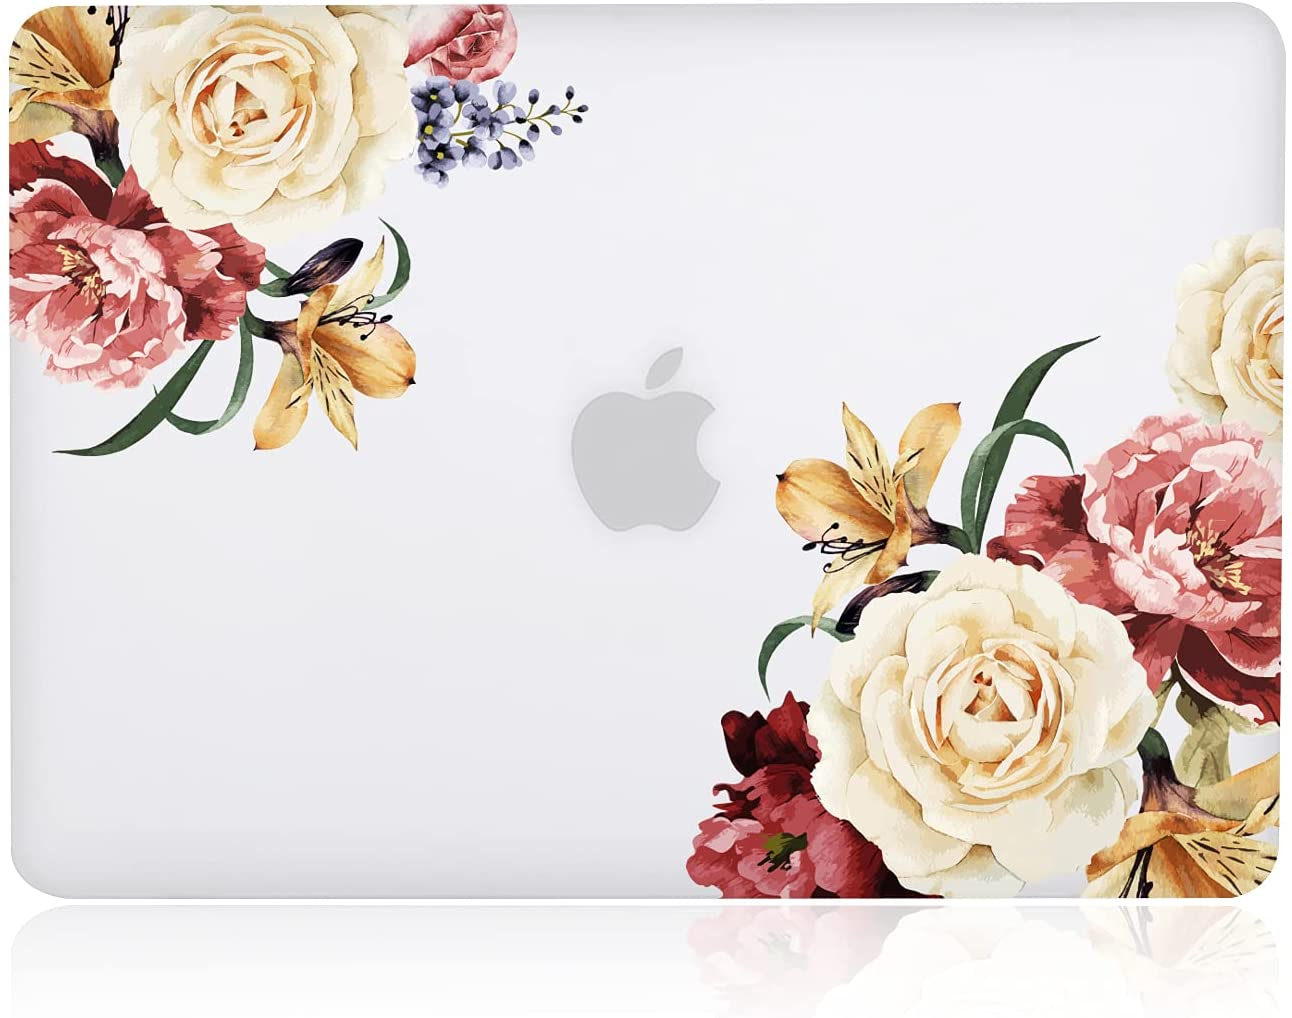 iDonzon Case for MacBook Air 13 inch (Model: A1466 & A1369, 2010-2017 Release), 3D Effect Matte Clear See Through Hard Case Cover Only Compatible MacBook Air 13.3 inch - Peony Flower